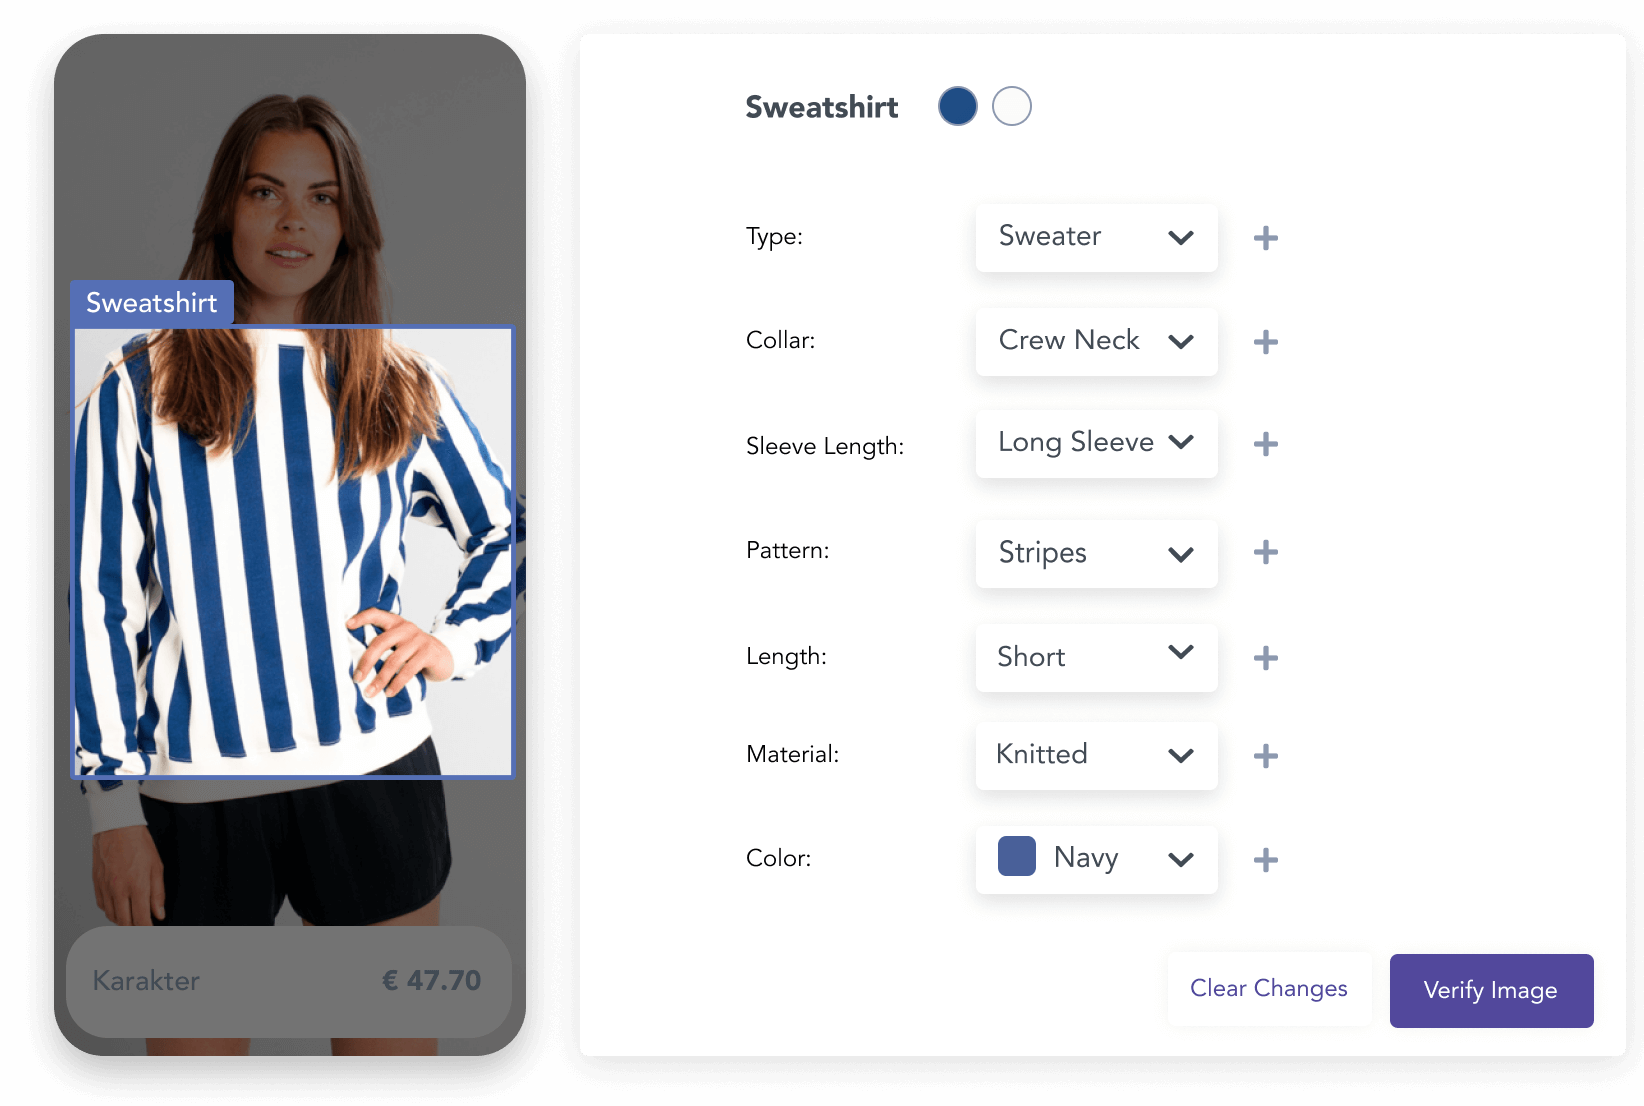 Catalog with accurate tags of the attributes detected on the image